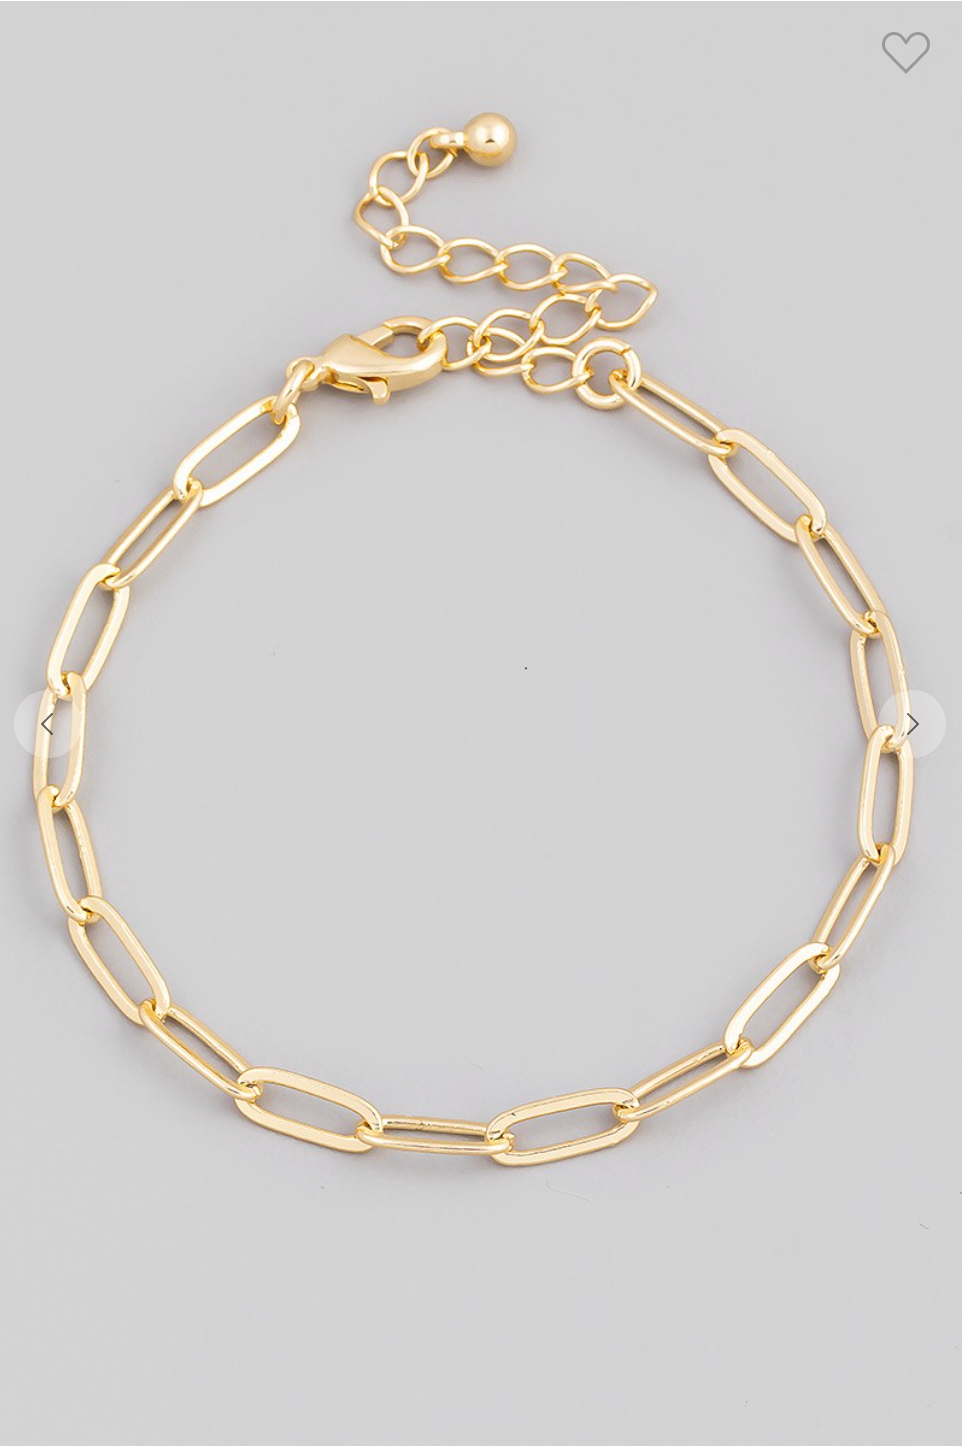 Oval Chain Link Lobster Clasp Bracelet